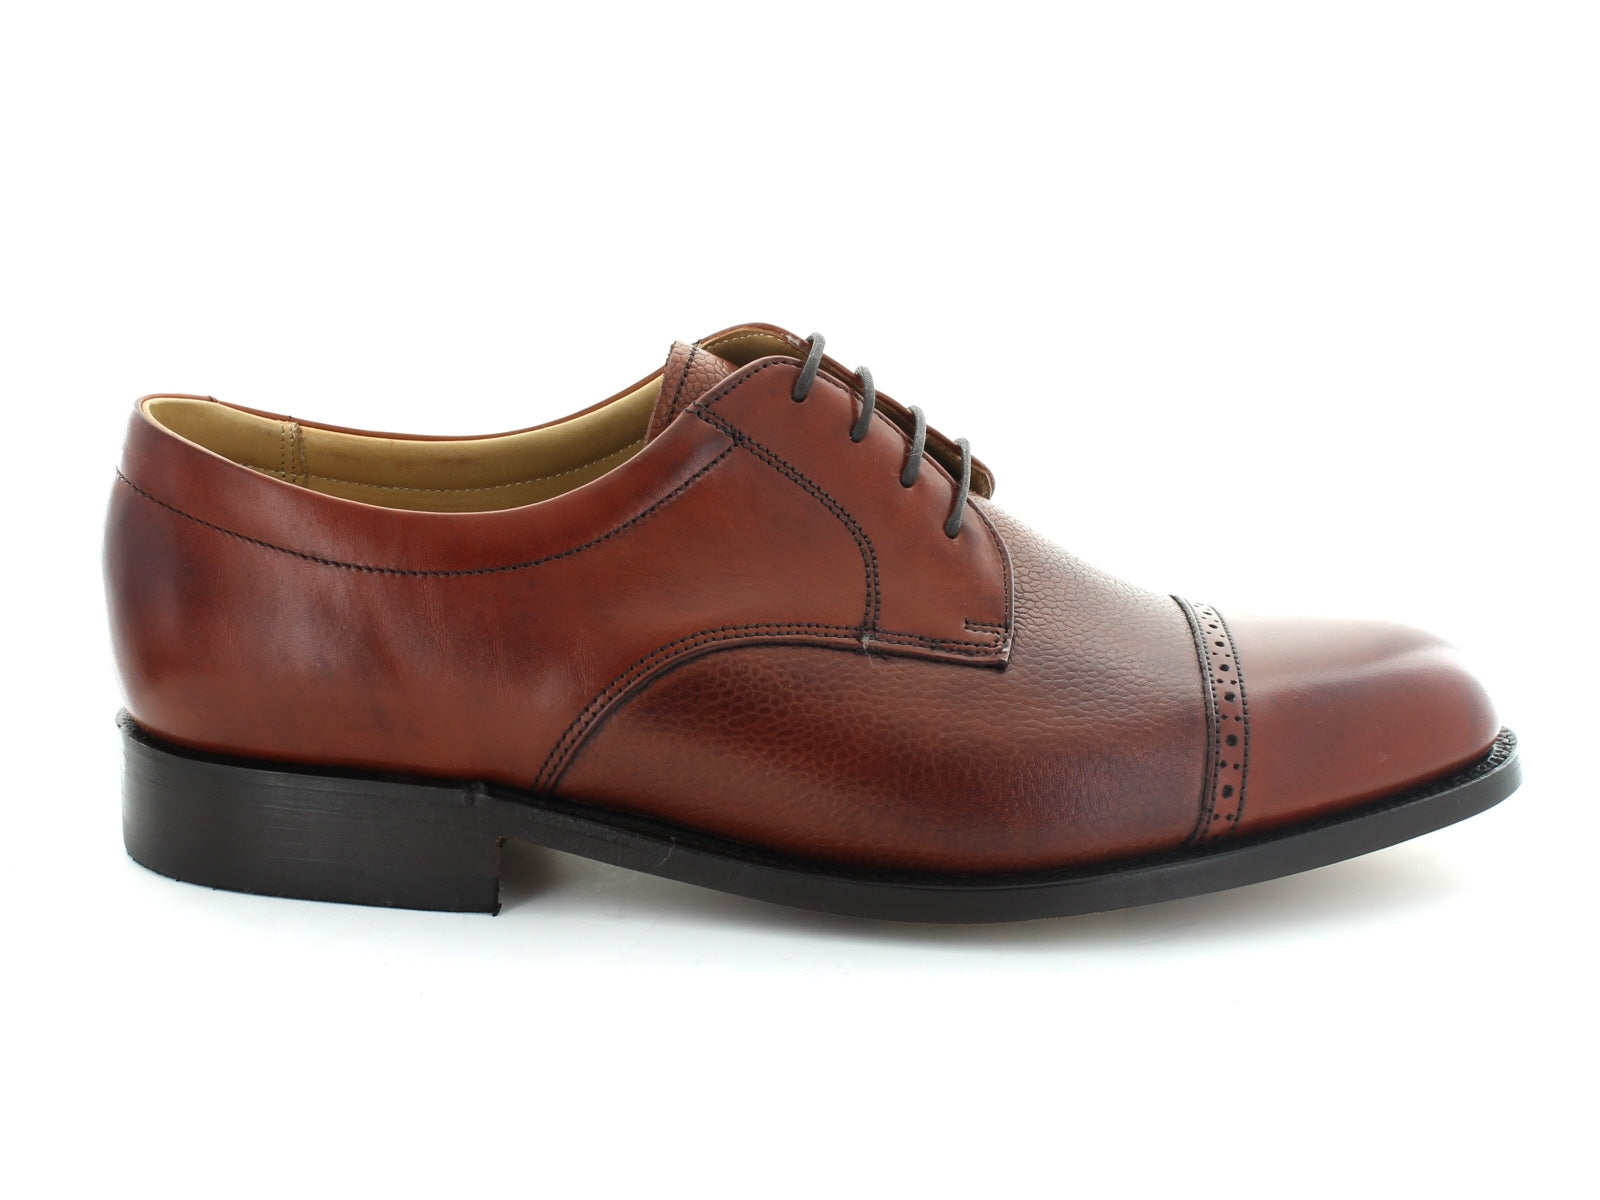 ef5e361f Barker Staines | Men's Formal Laced Shoes | Rosewood Leather – Walsh  Brothers Shoes